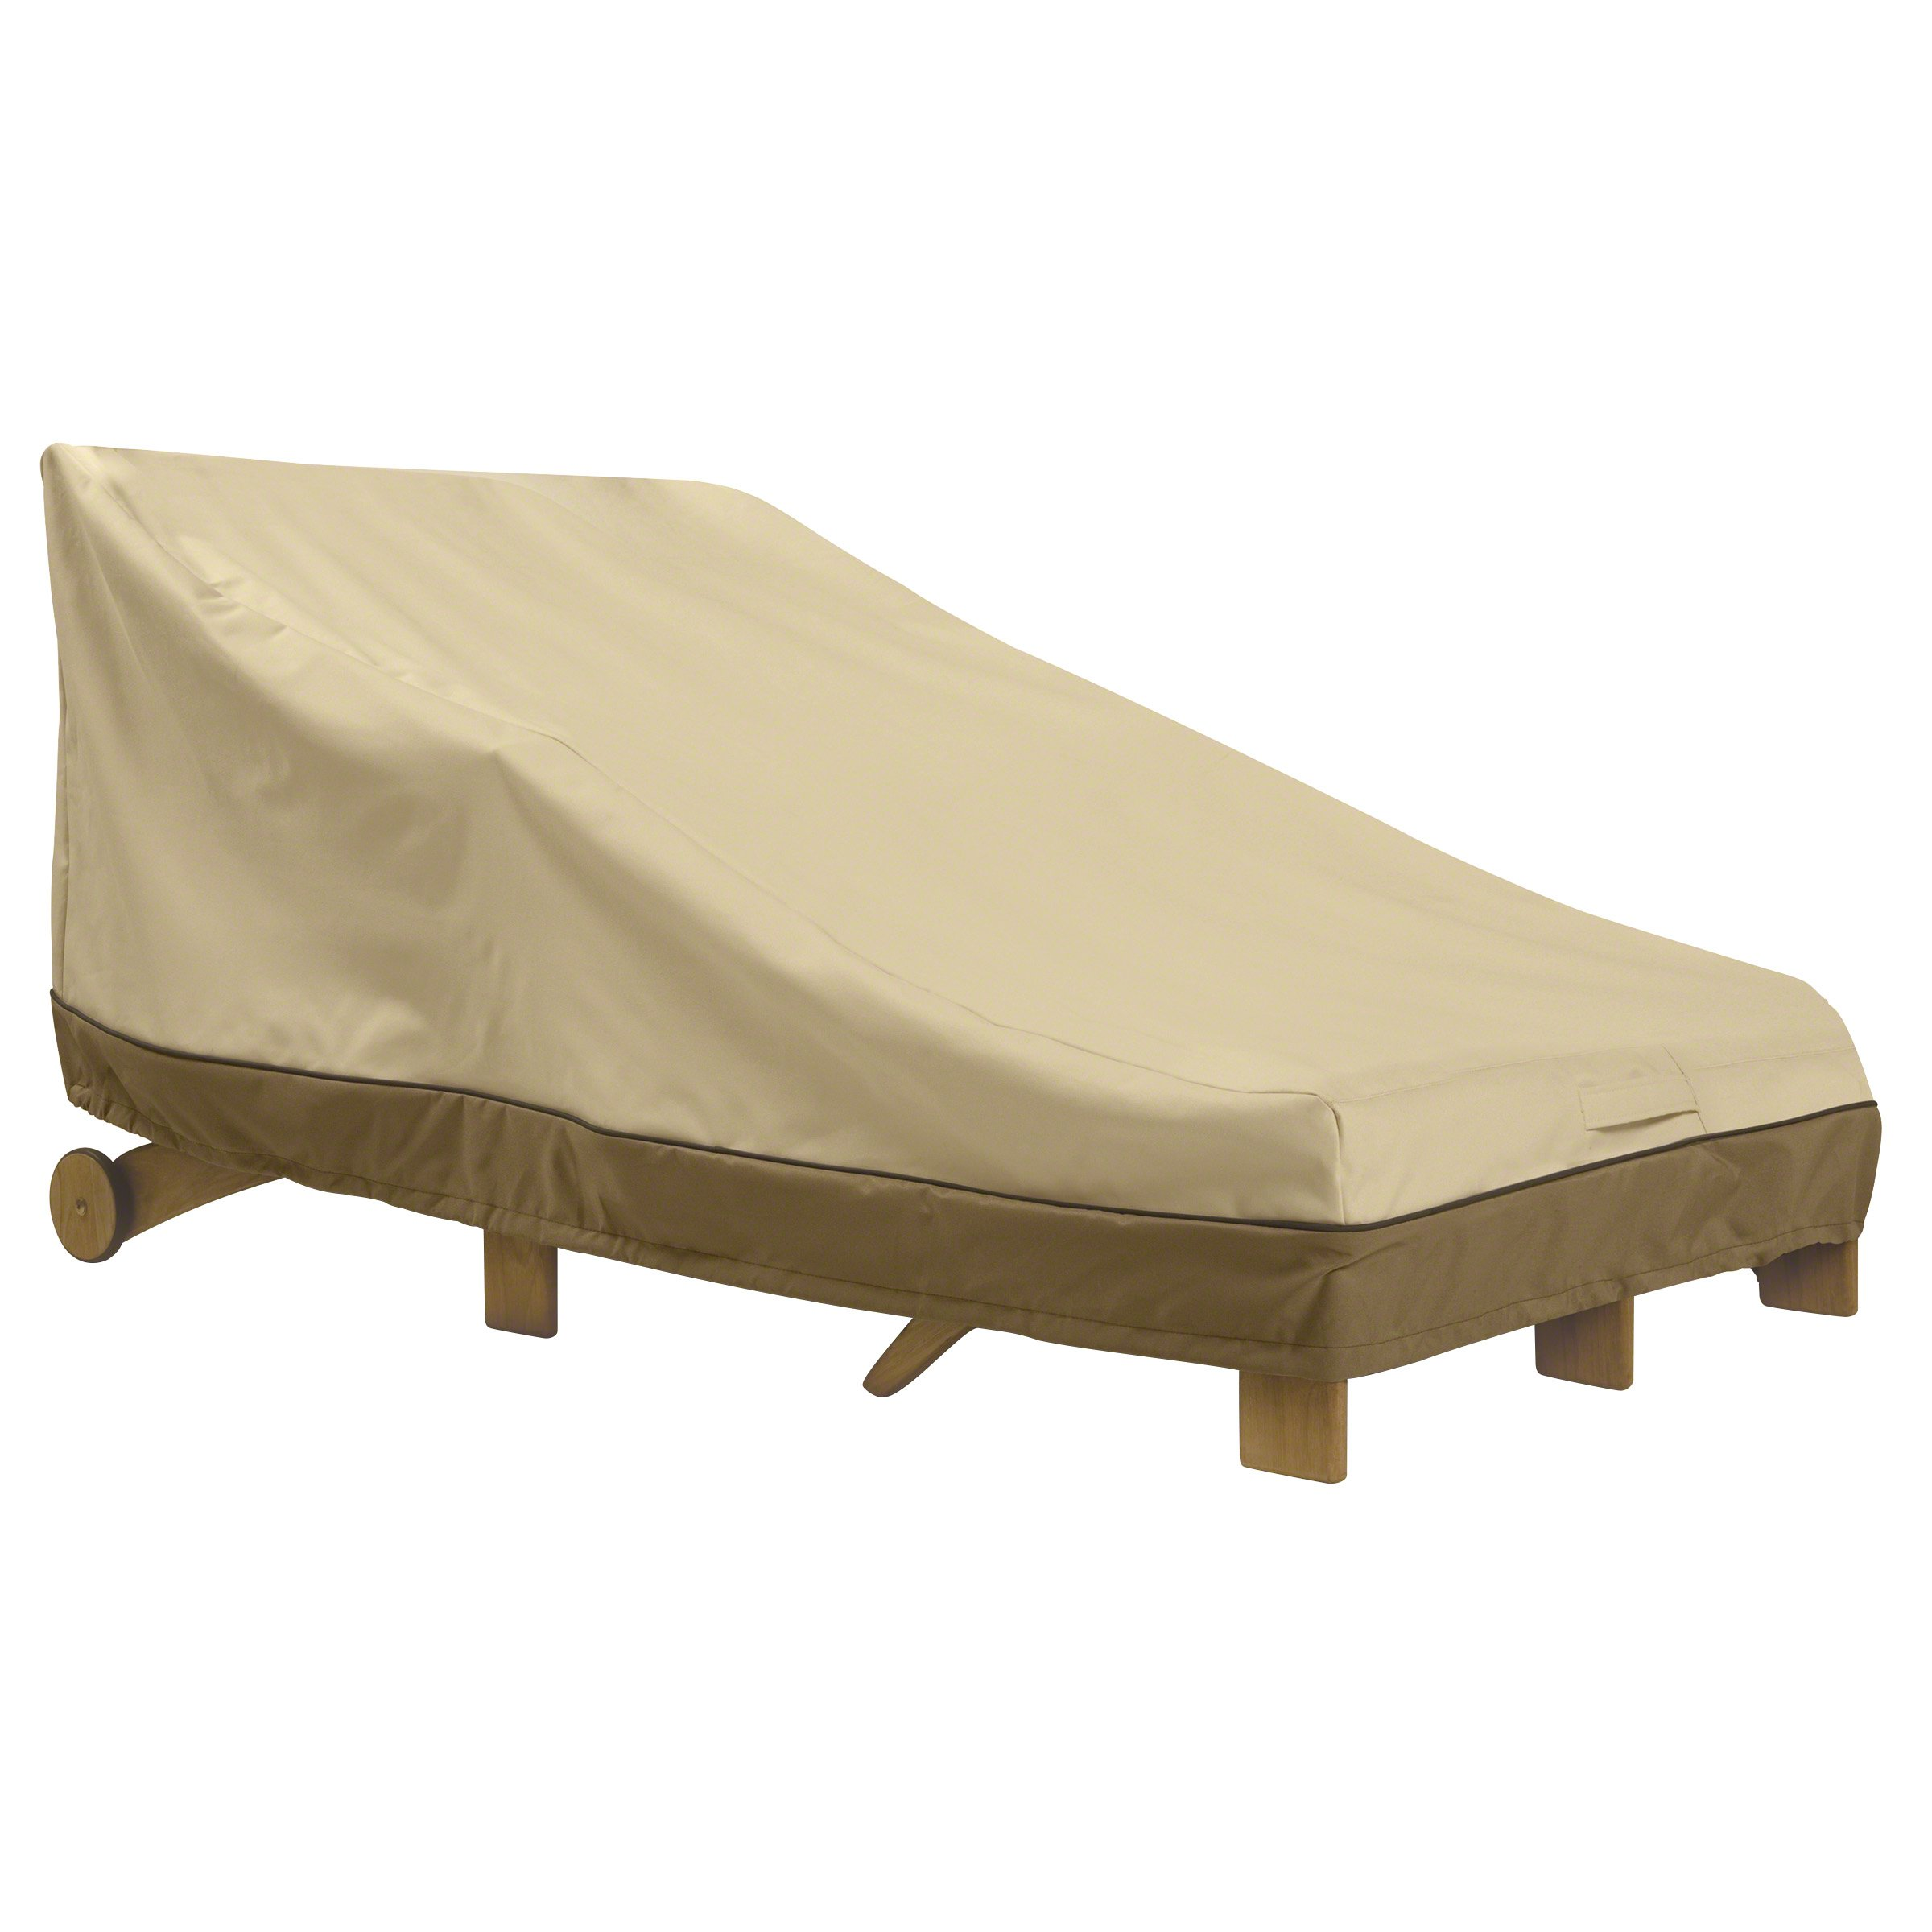 Classic Accessories 55-464-011501-00 Veranda Double Wide Patio Chaise Lounge Cover